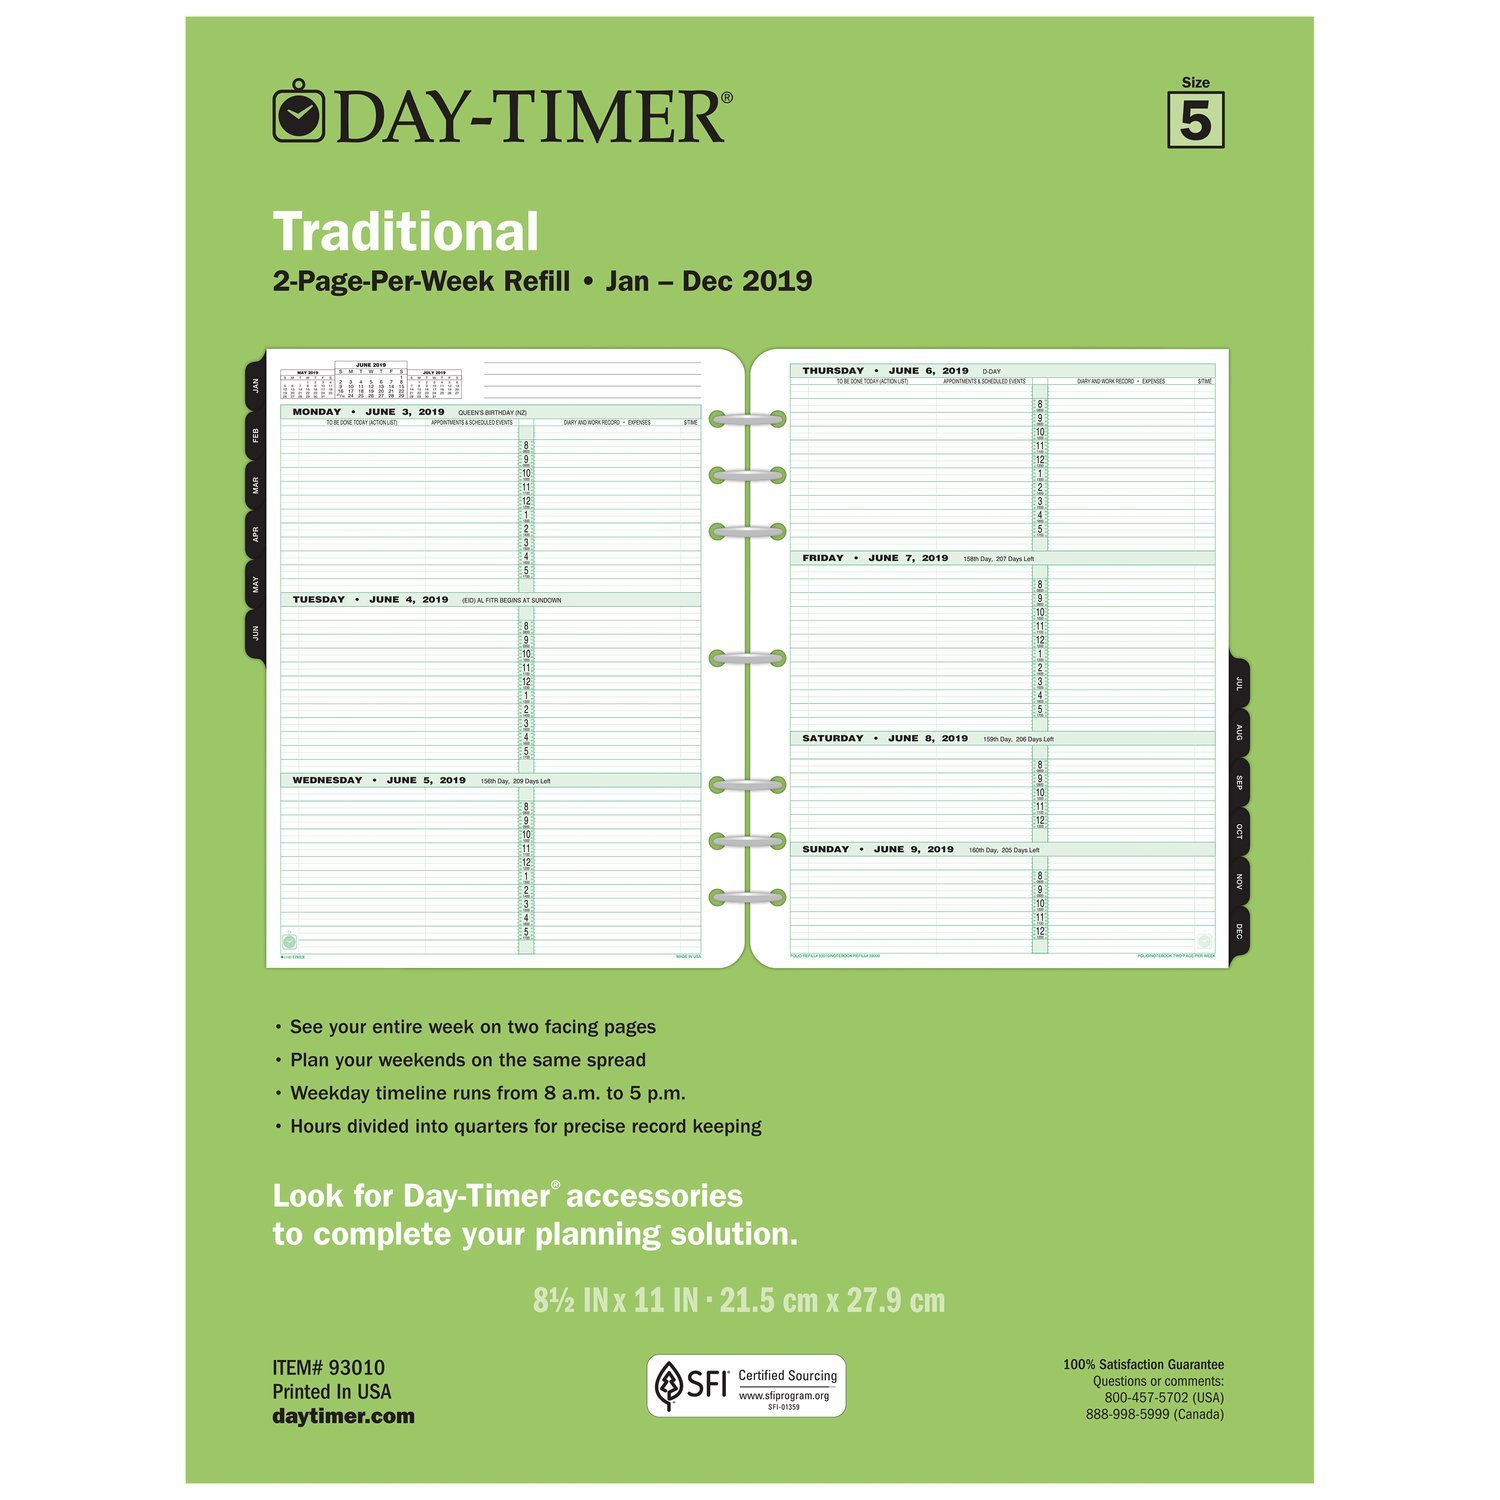 Day-Timer 2019 Planner Refill, 8-1/2 x 11, Folio Size 5, Two Pages Per Week, Loose Leaf, Classic (93010) 8-1/2 x 11 ACCO Brands 930101901